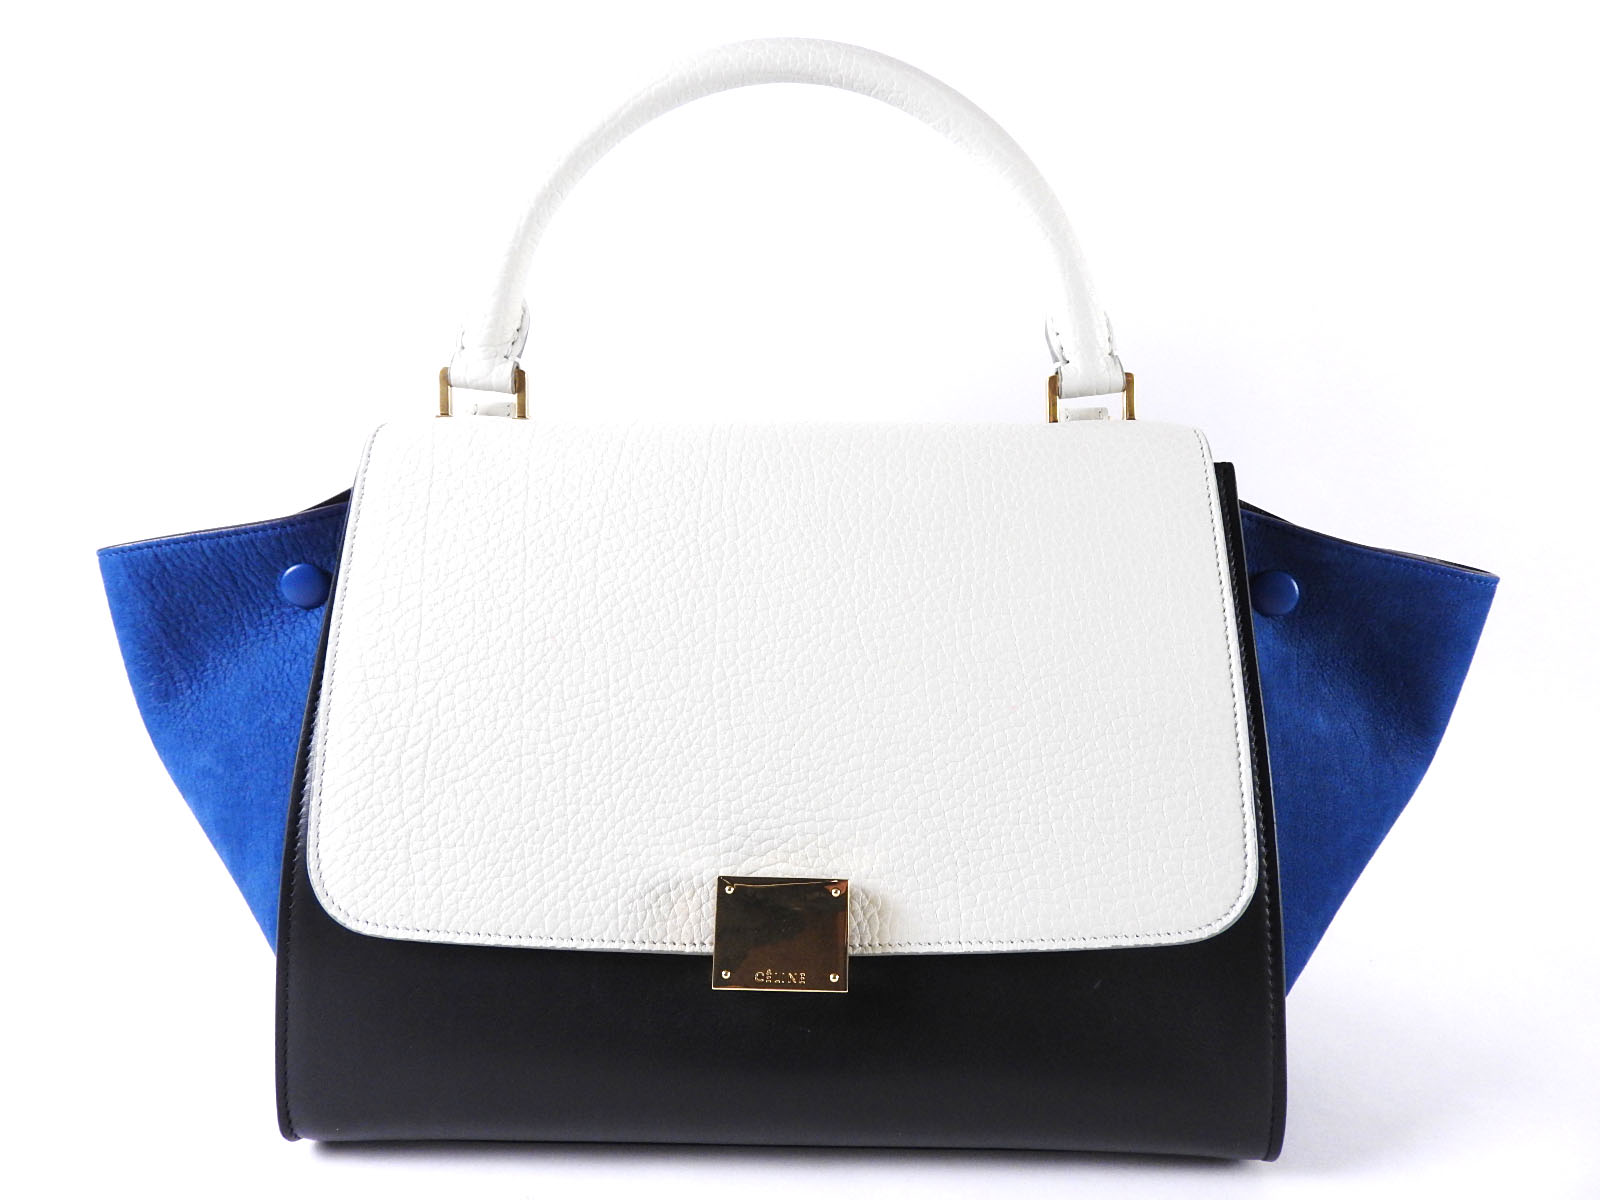 92fe5ece23 Details about CELINE Trapeze 2way Hand Bag Shoulder Bag Leather Suede  Tricolore 174683 A-5255